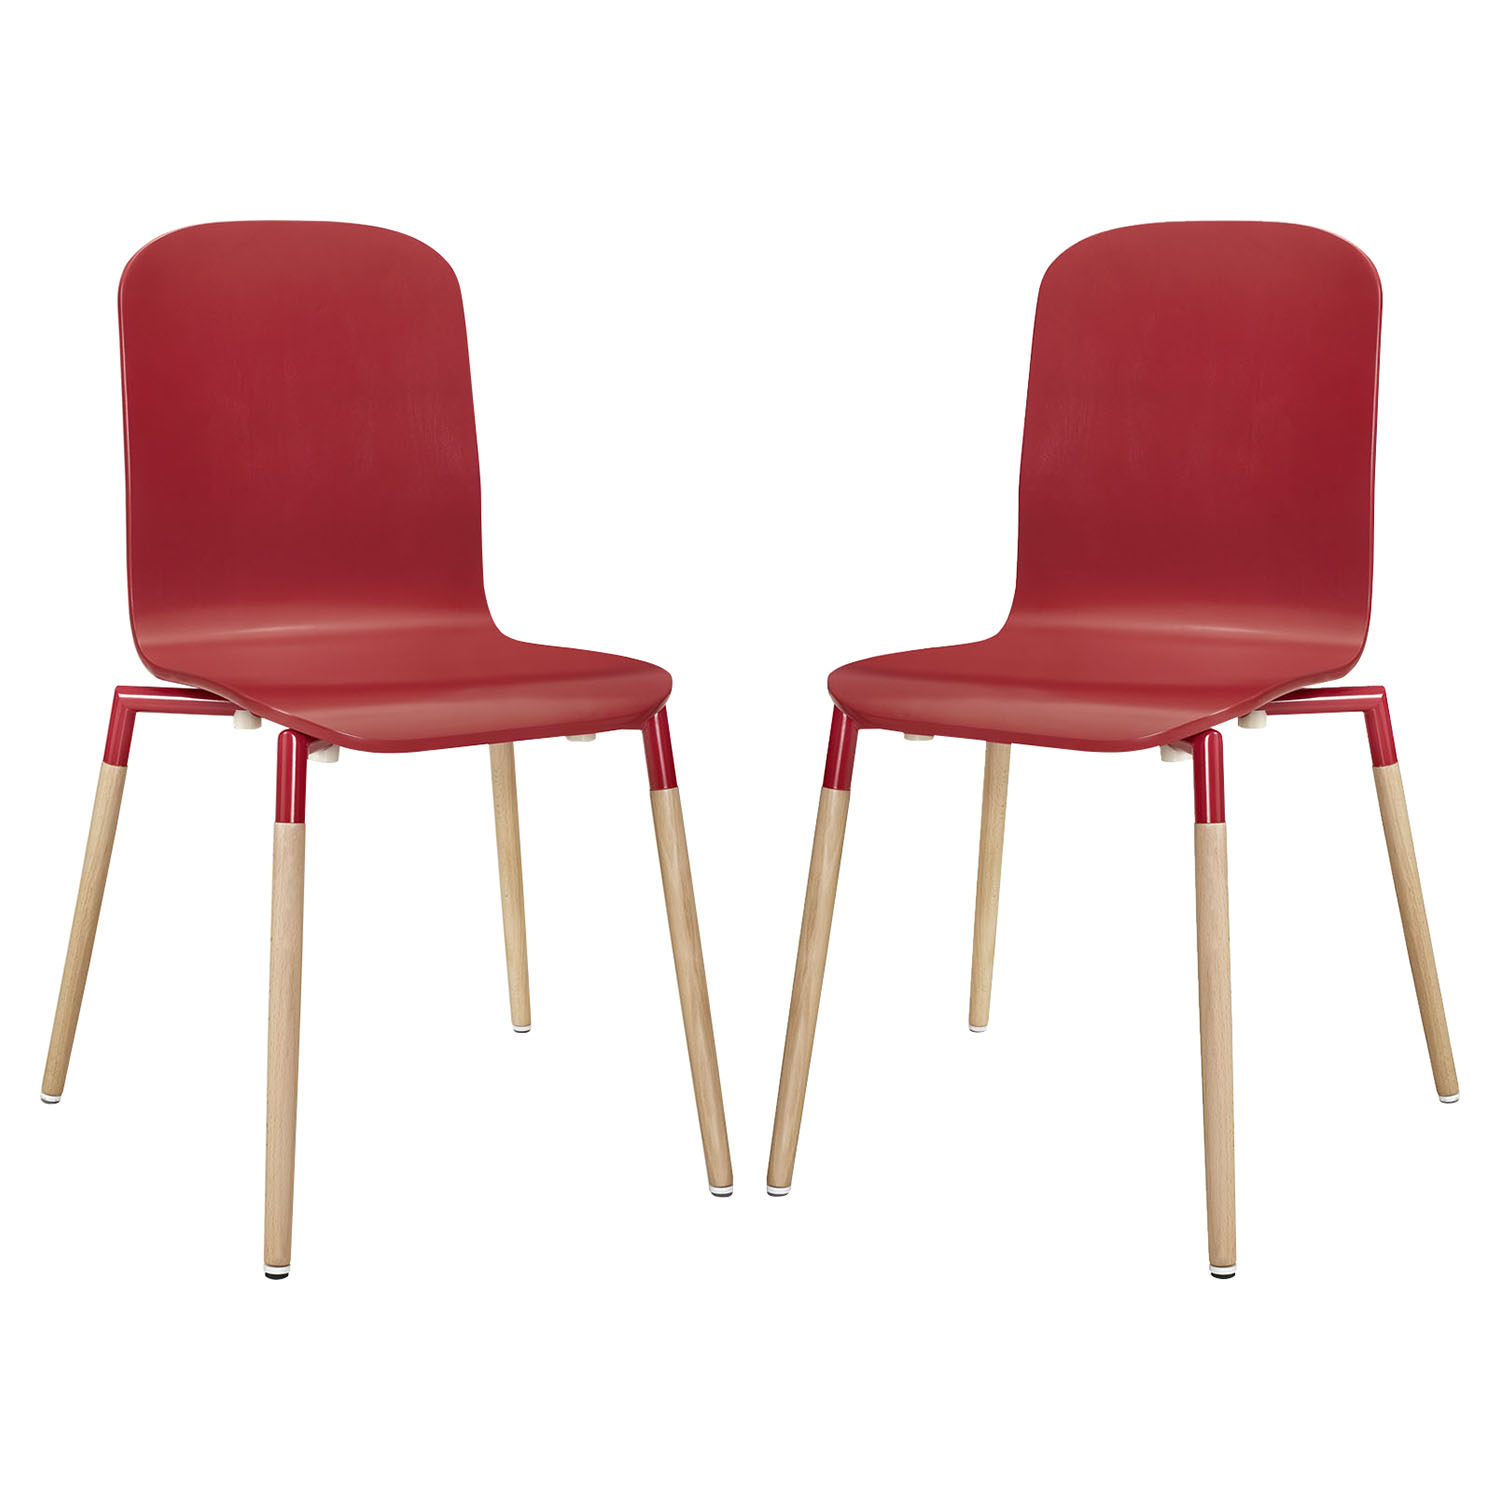 Stack Dining Chair - Wood Legs, Red (Set of 2)